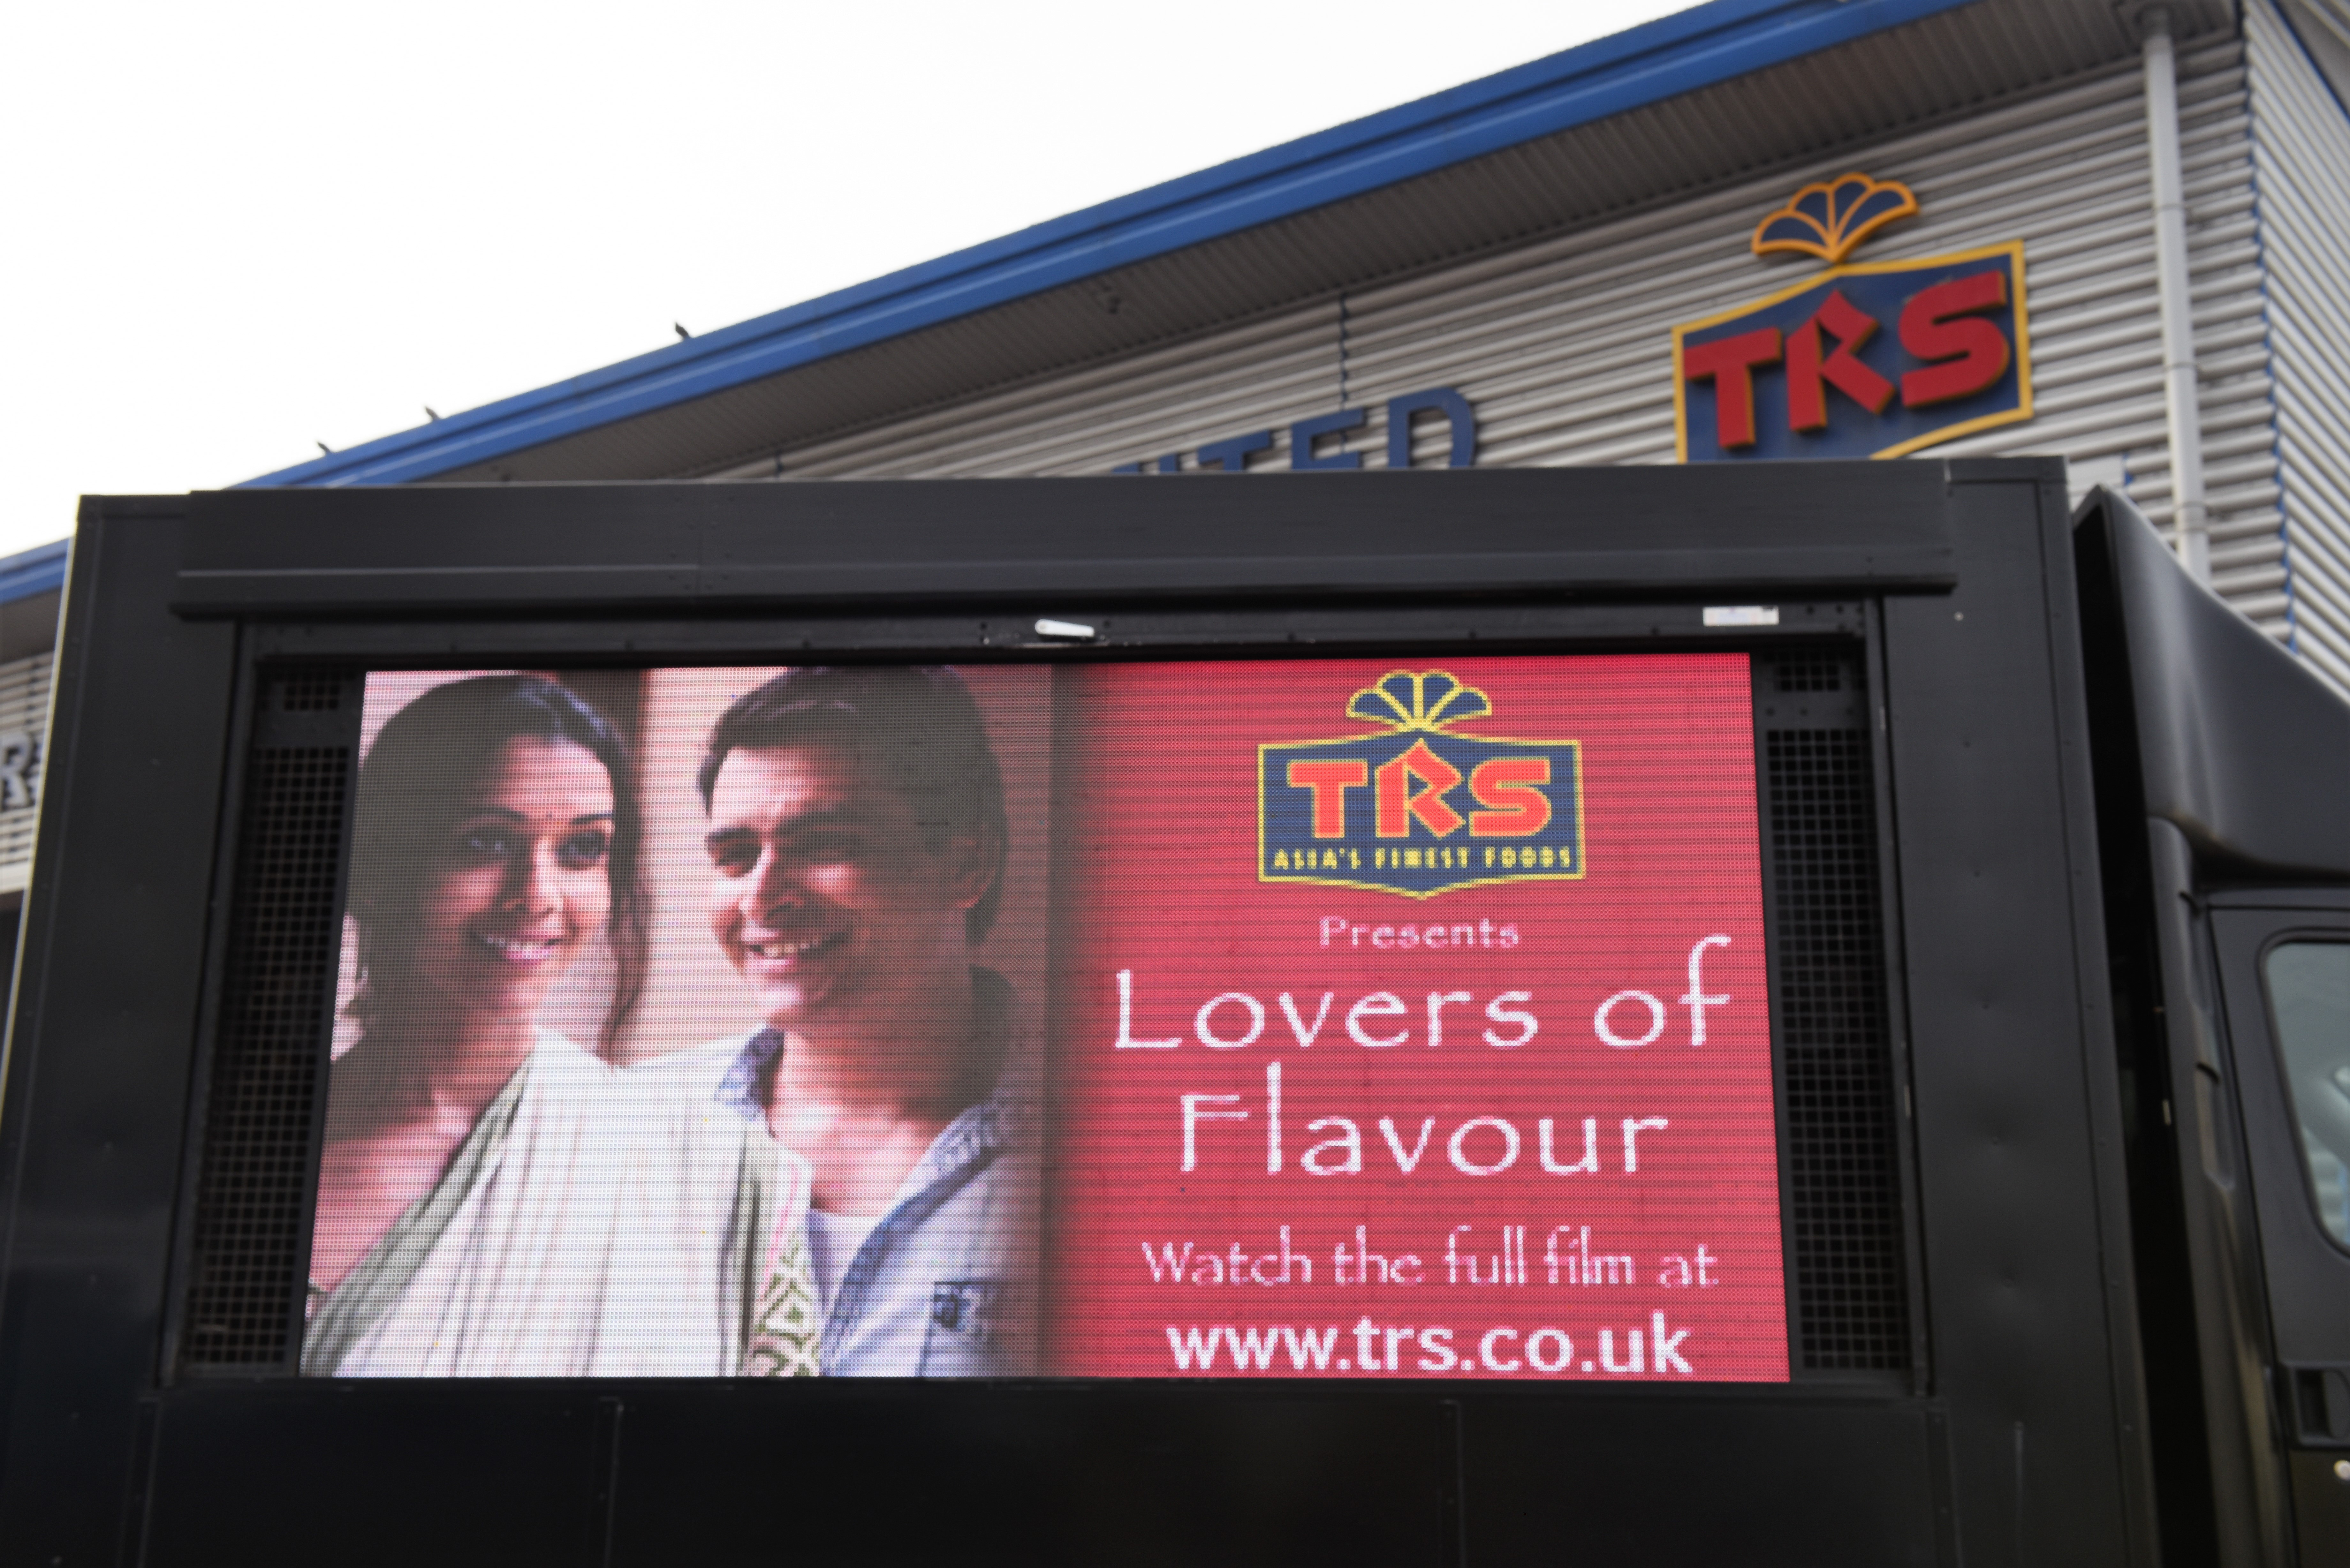 FALL IN LOVE THIS SPRING WITH TRS' NEW TV Ad CAMPAIGN – LOVERS OF FLAVOUR news image